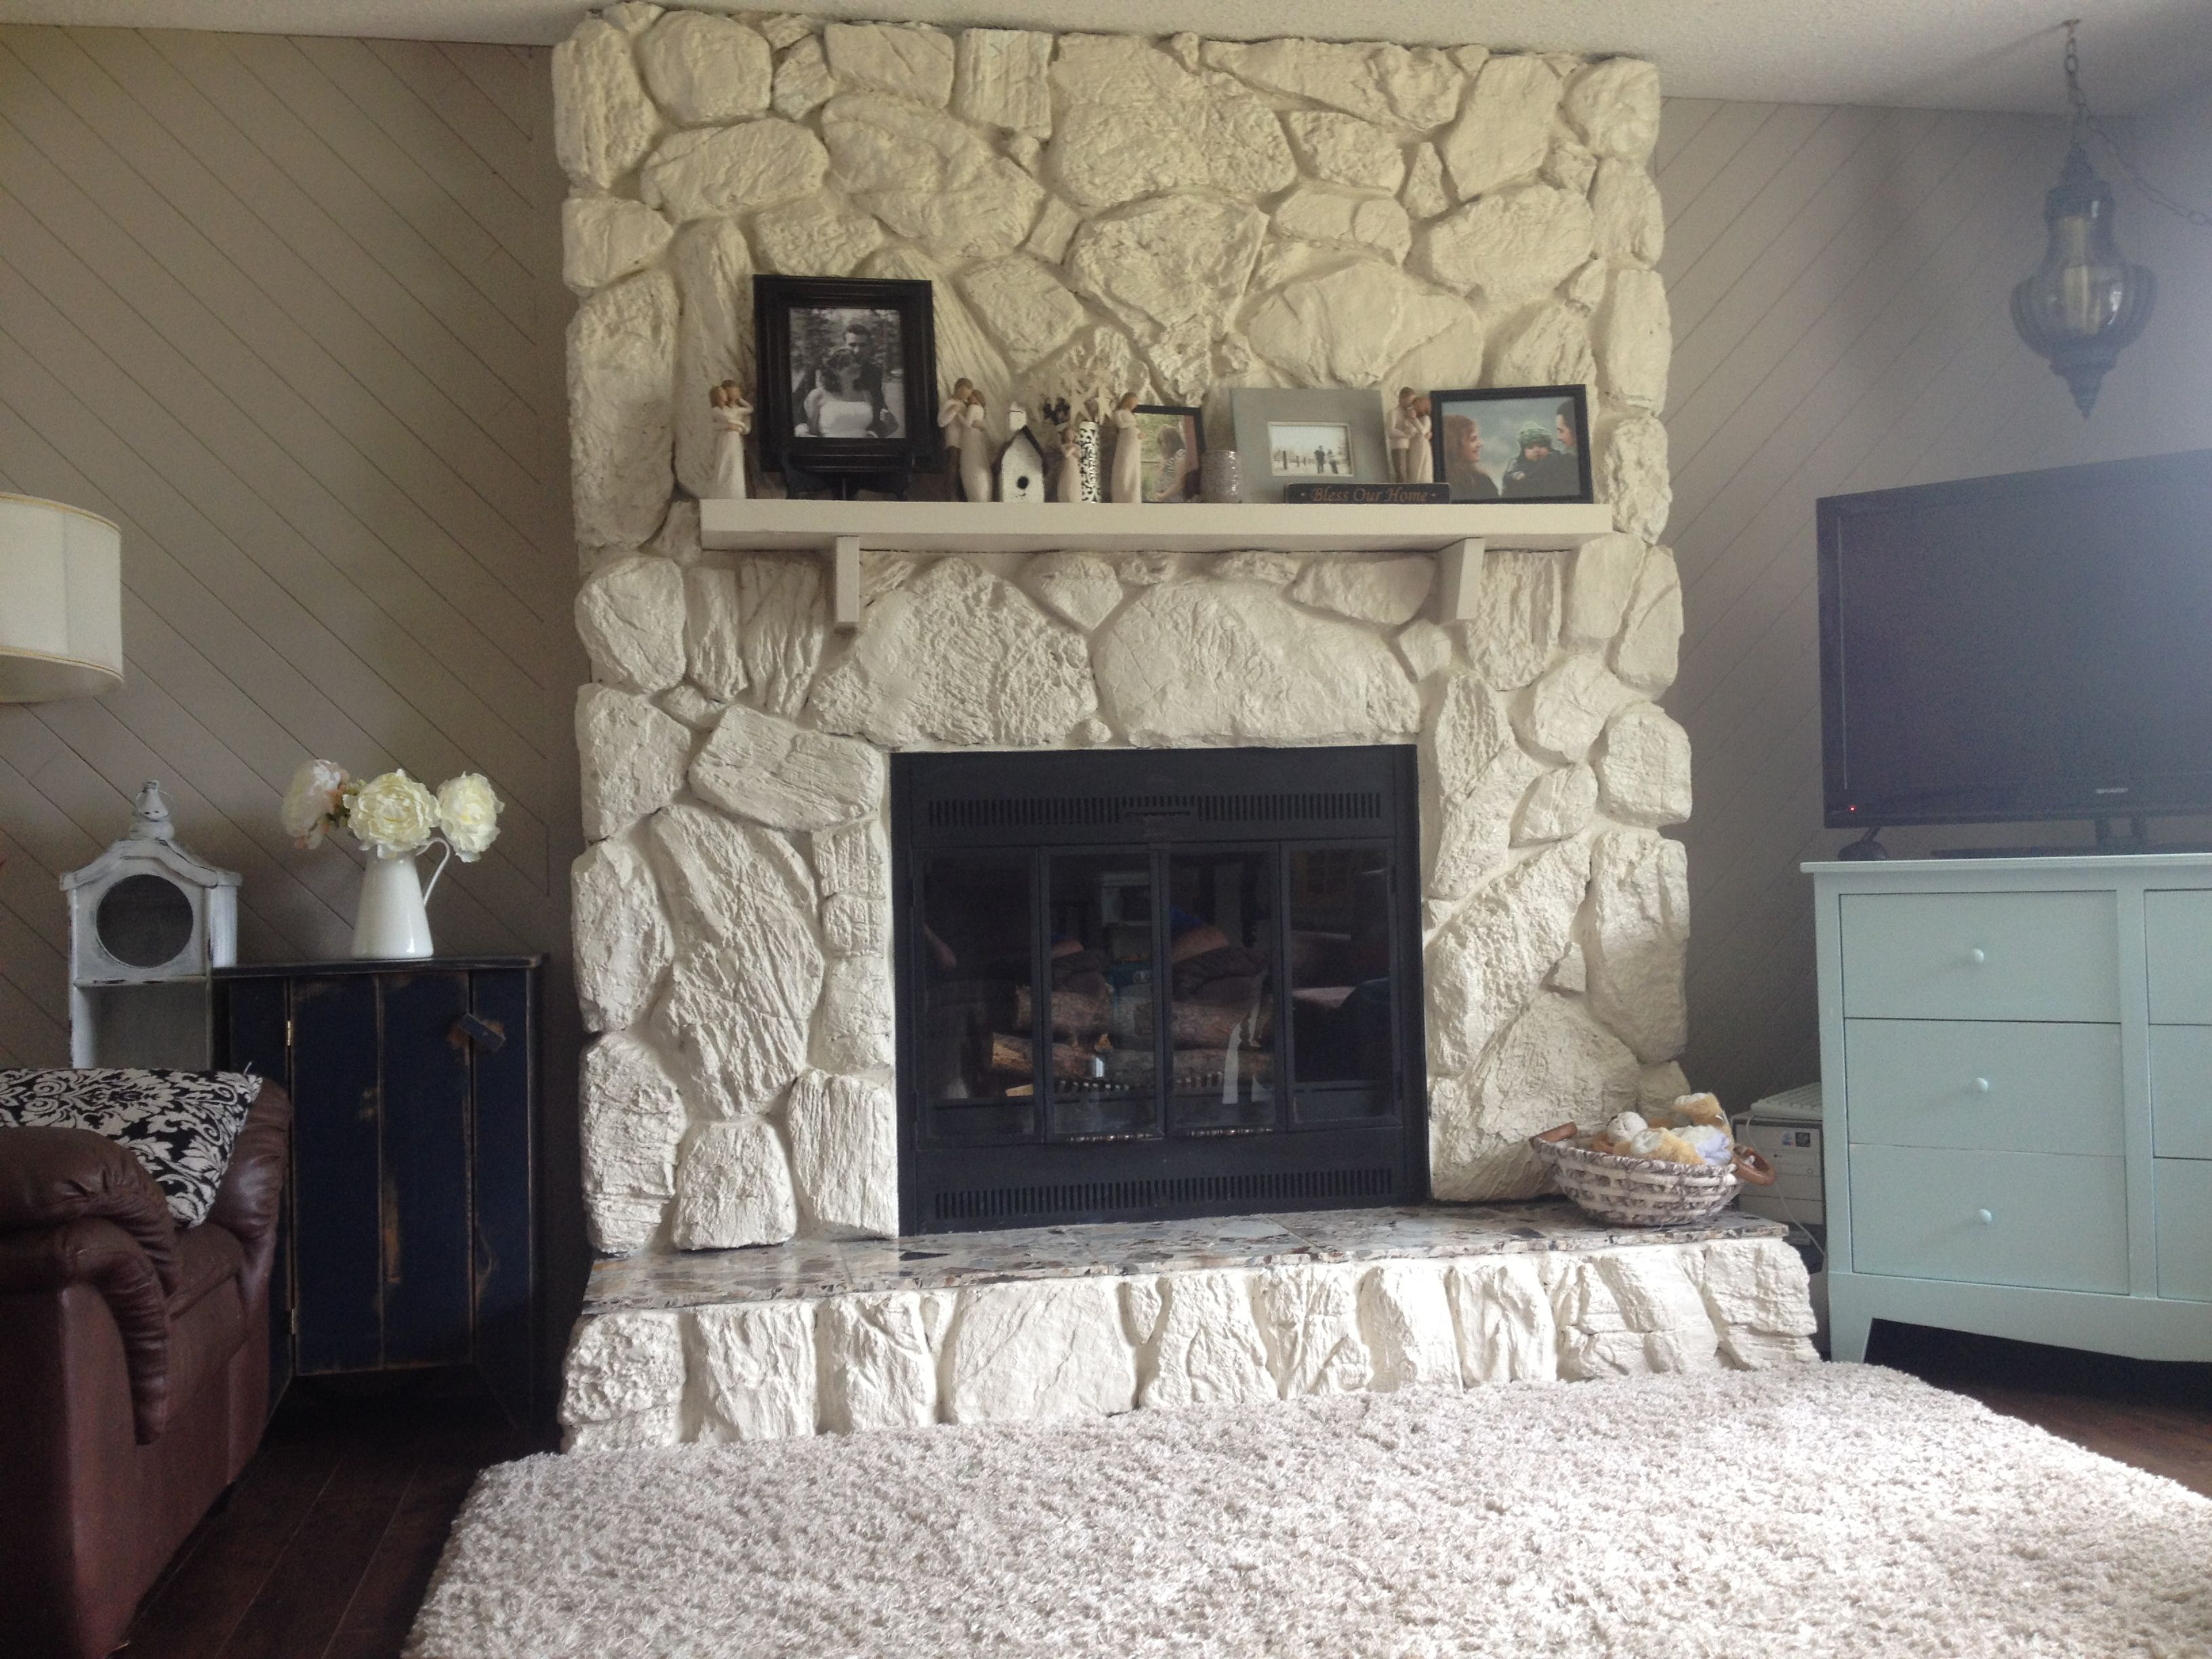 River rock fireplace pictures - Painted Rock Fireplace Huge Improvement Makes The Room Feel So Light And Airy Compared